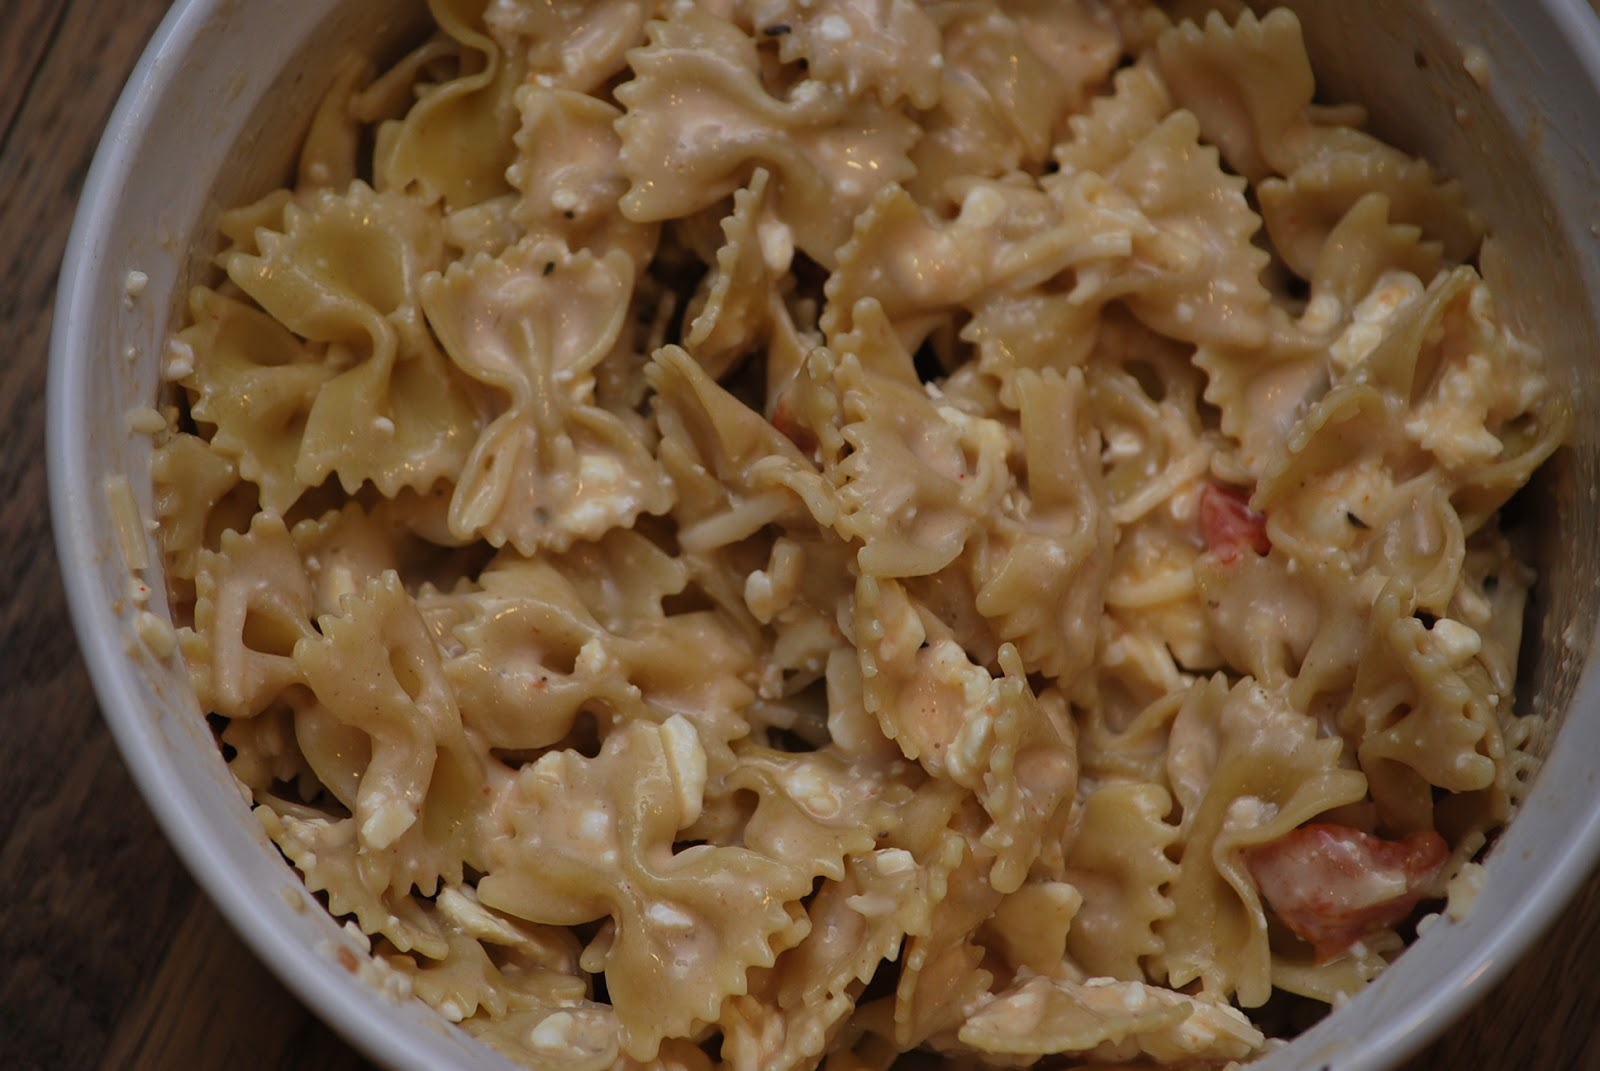 My story in recipes: Baked Bow Tie Pasta